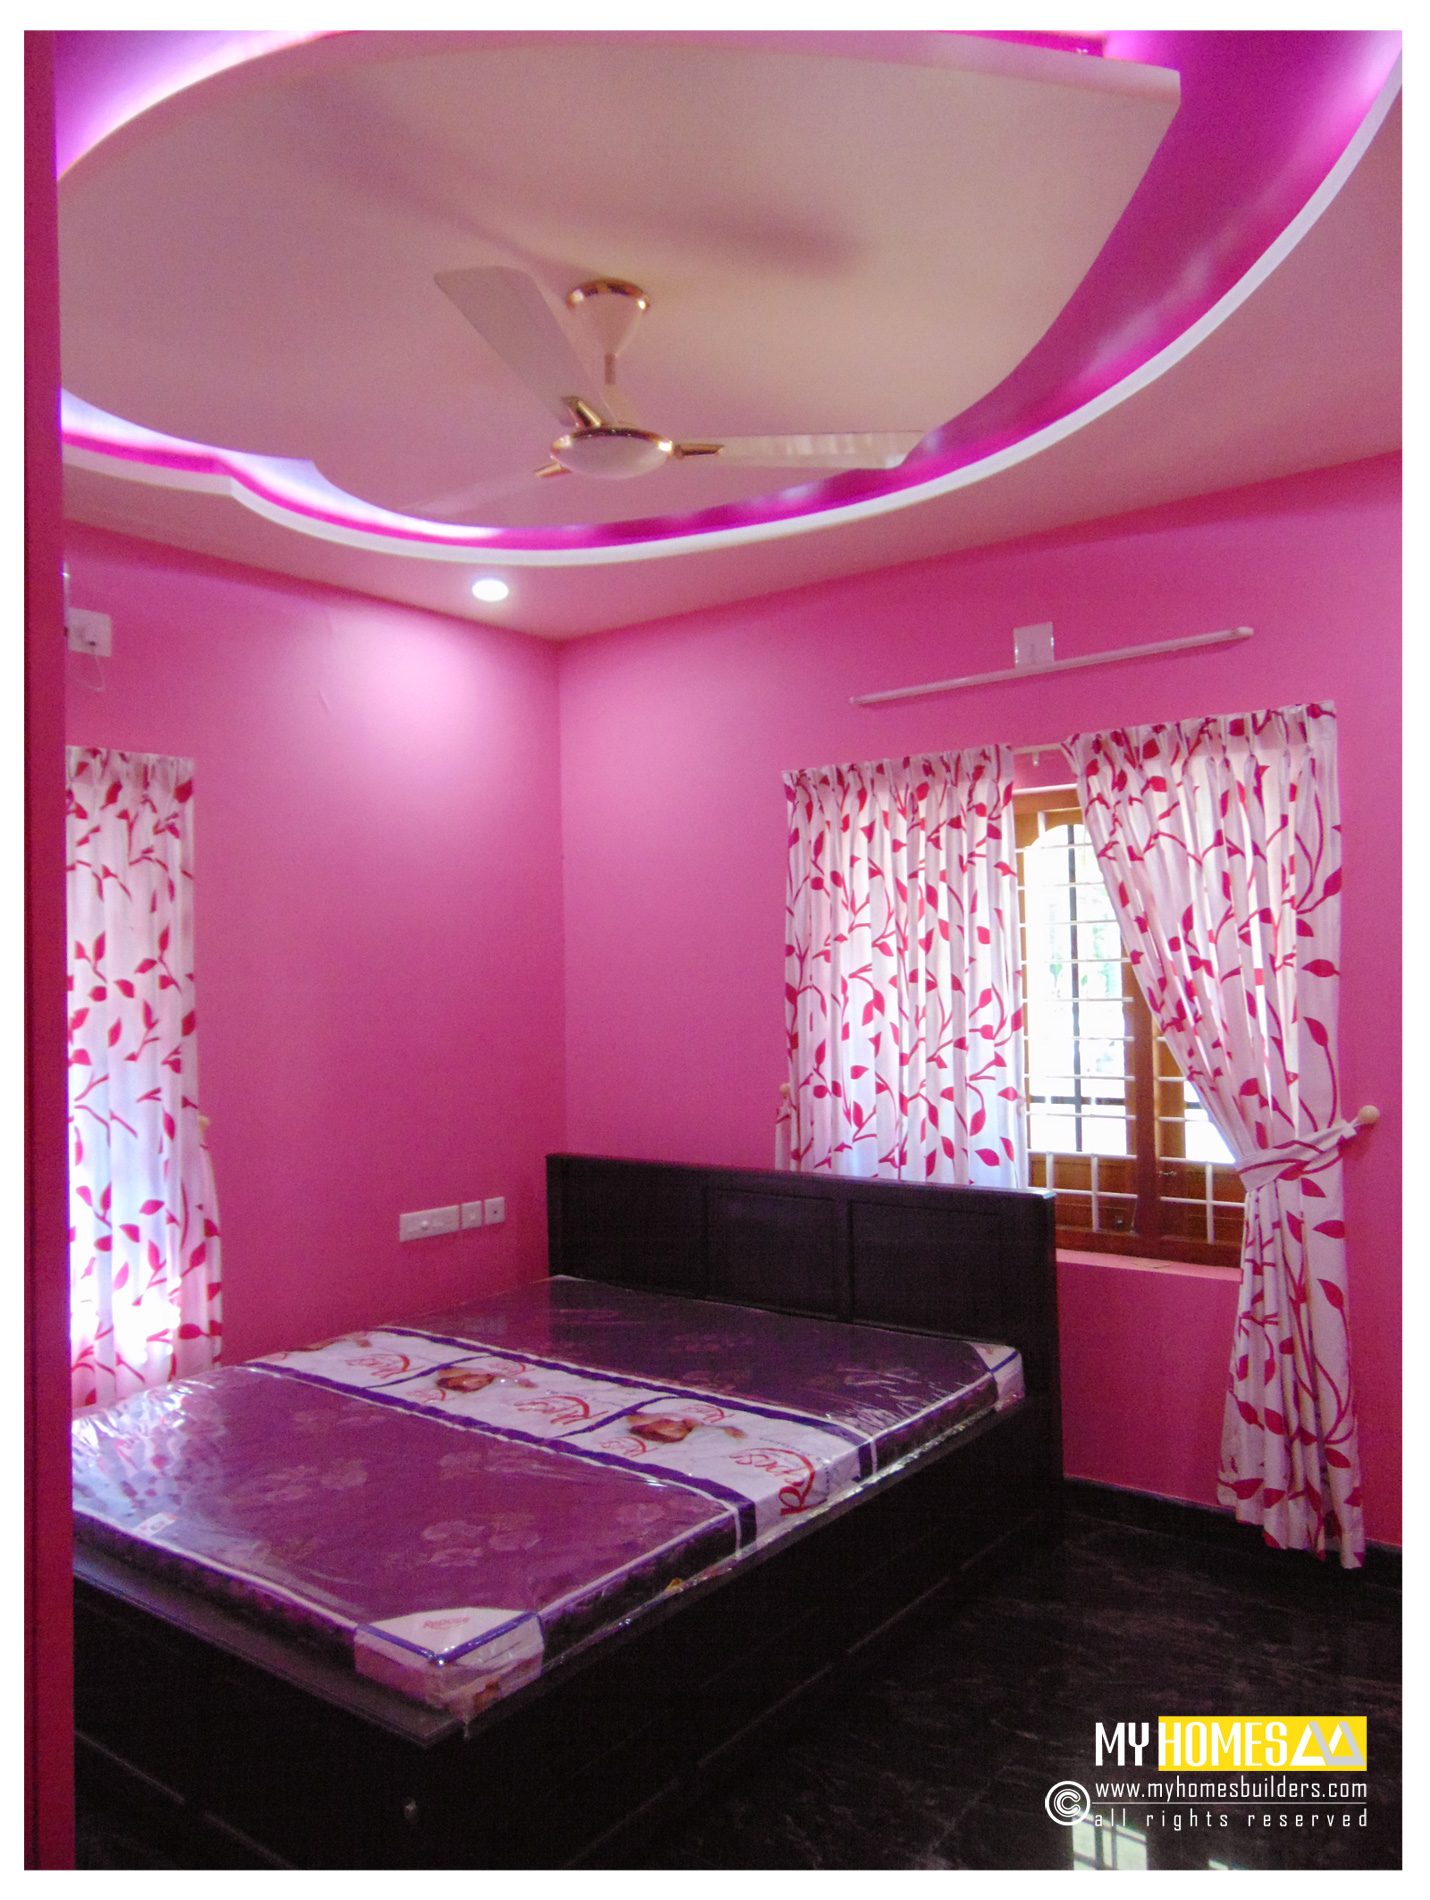 Kerala Bedroom Designs ...